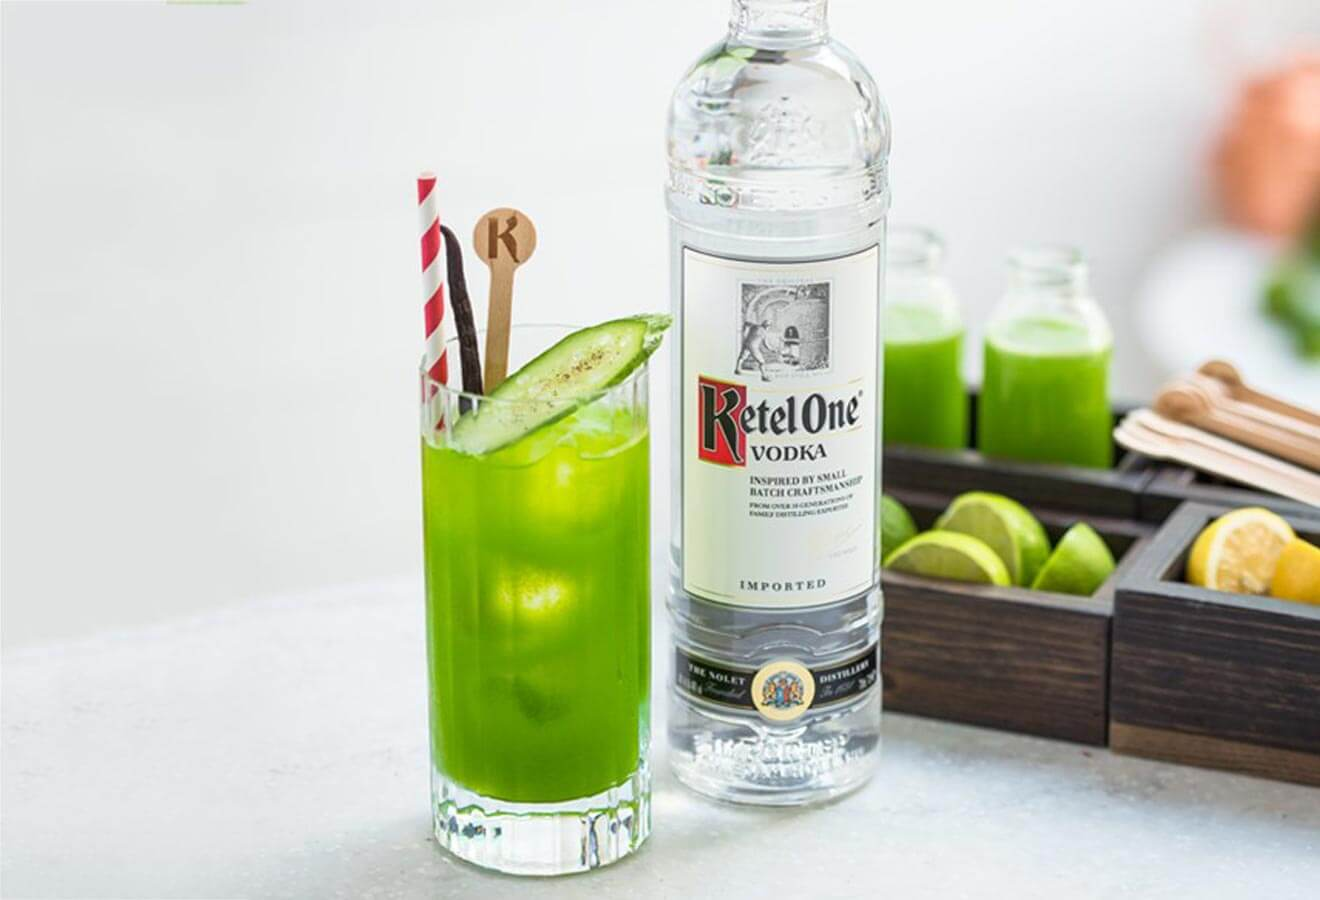 Ketel One Green Mary, cocktail with garnish, bottle, and fresh veg